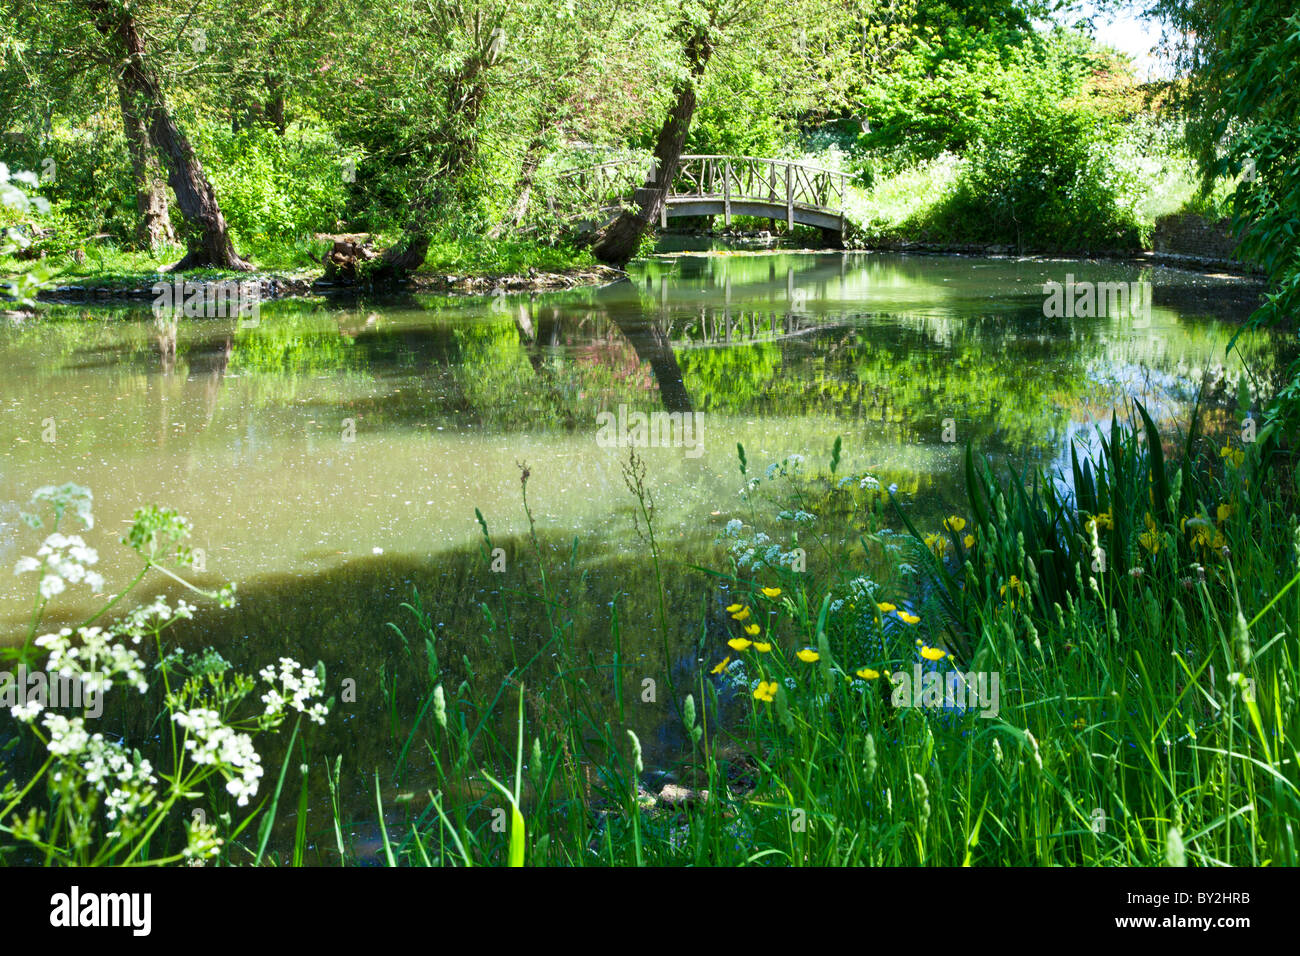 A large ornamental pond or small lake with a rustic wooden for Ornamental fish pond design